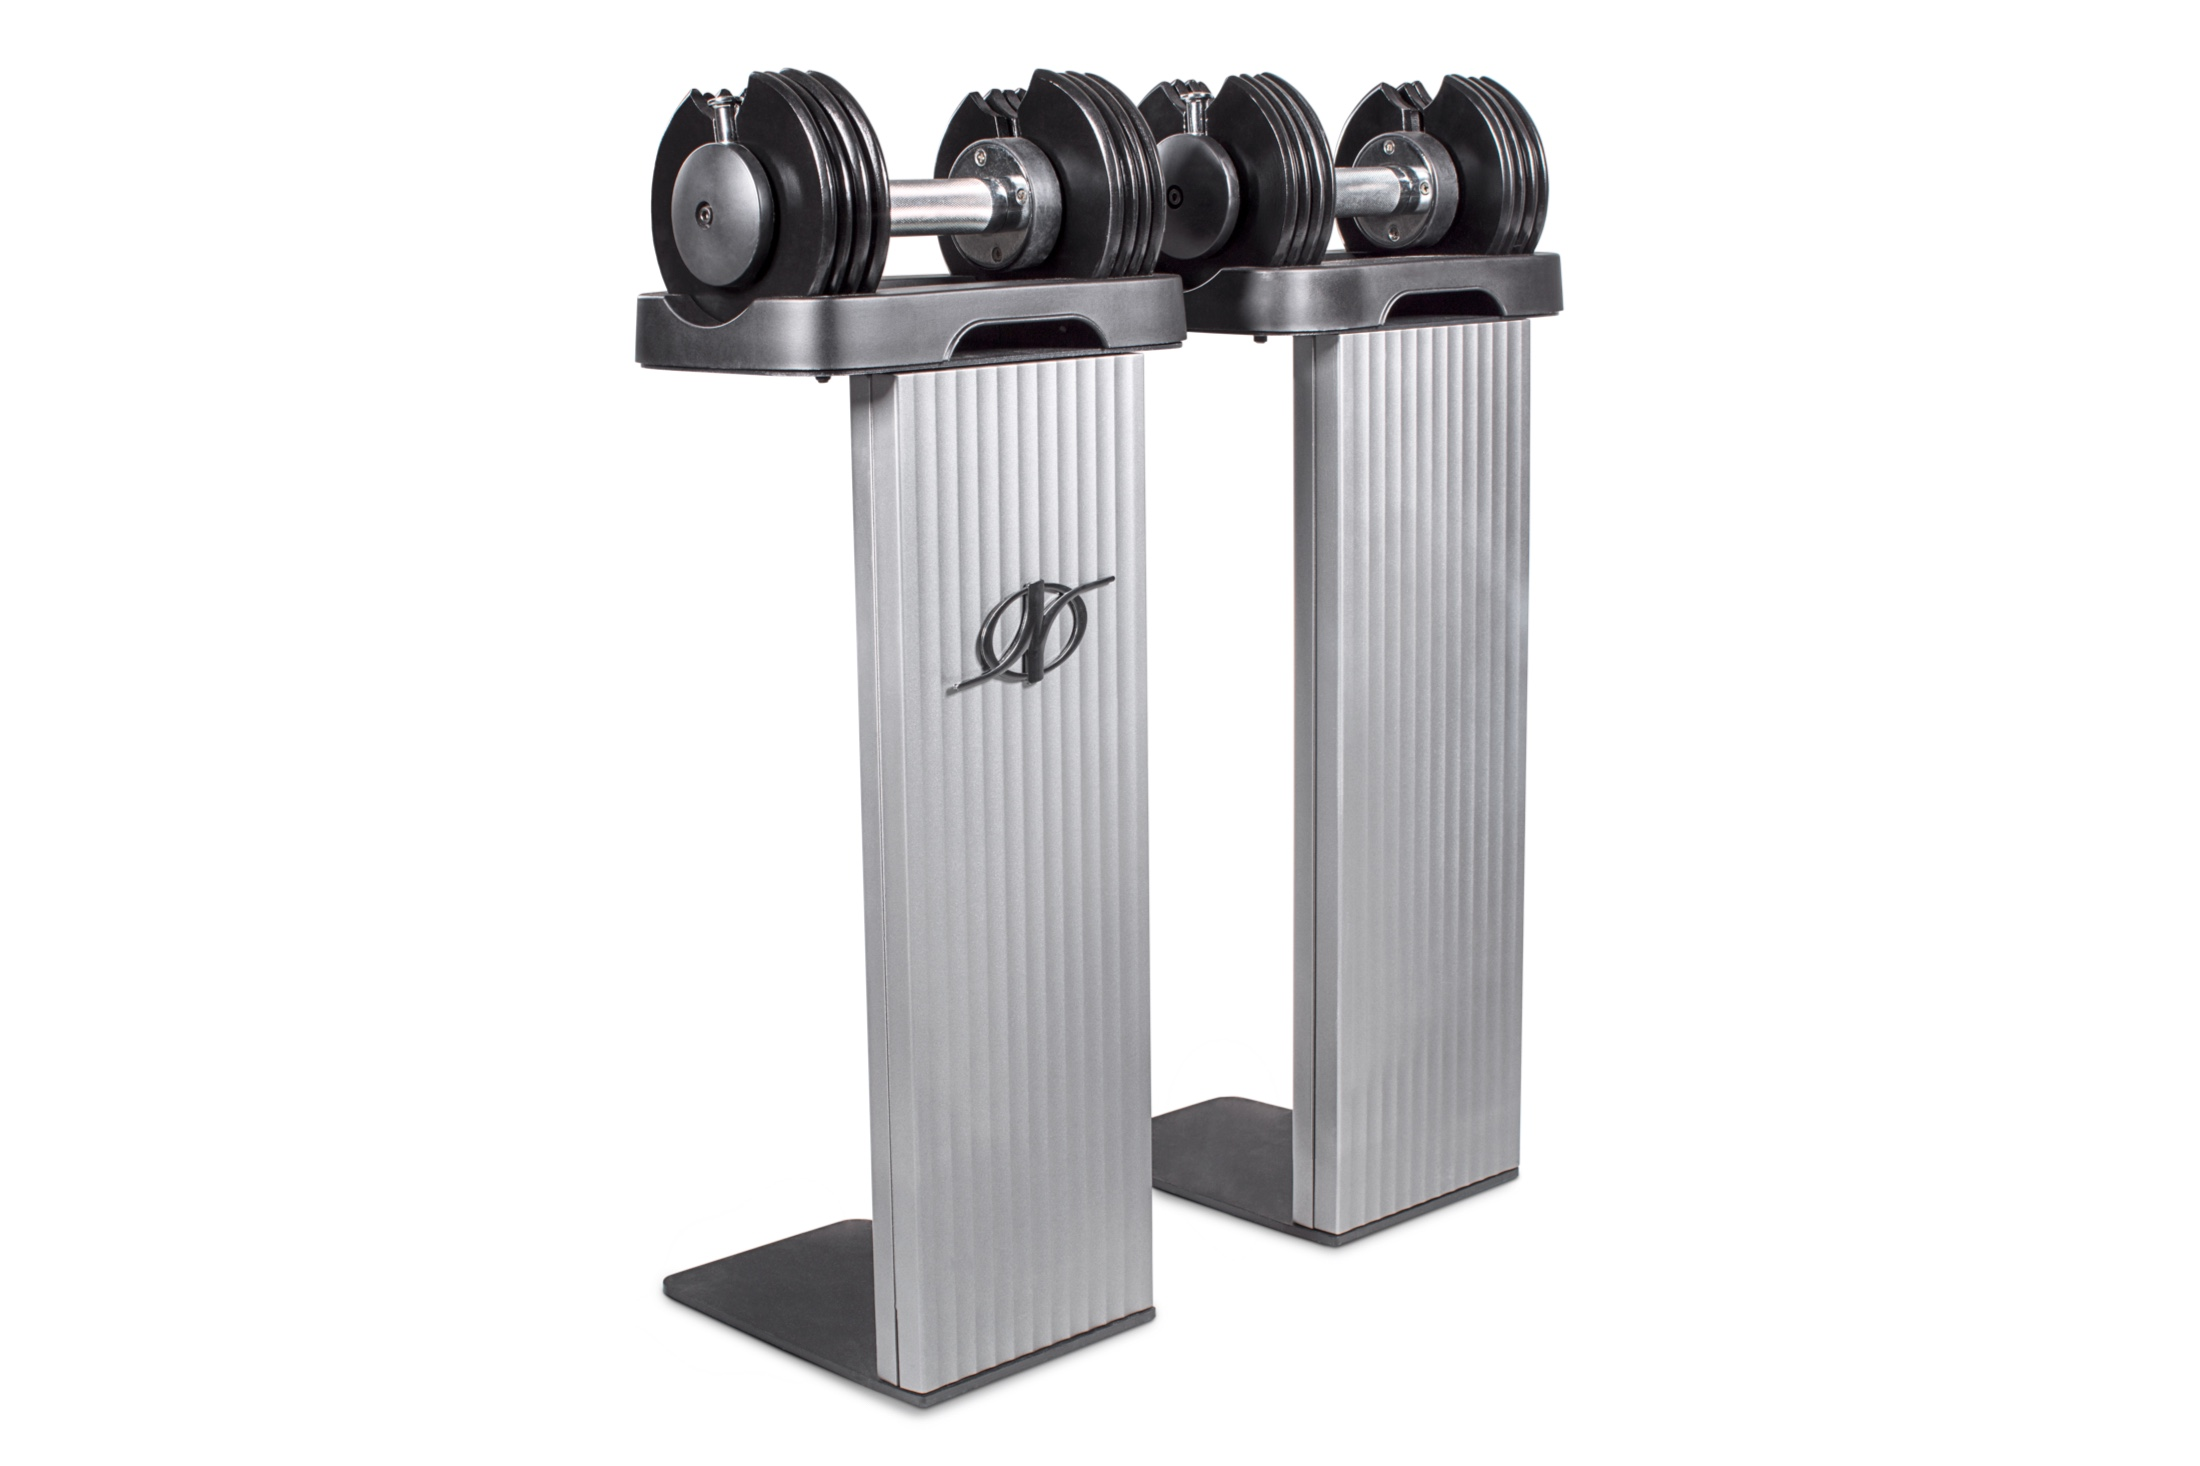 NordicTrack SpeedWeight Adjustable Dumbbells gallery image 1